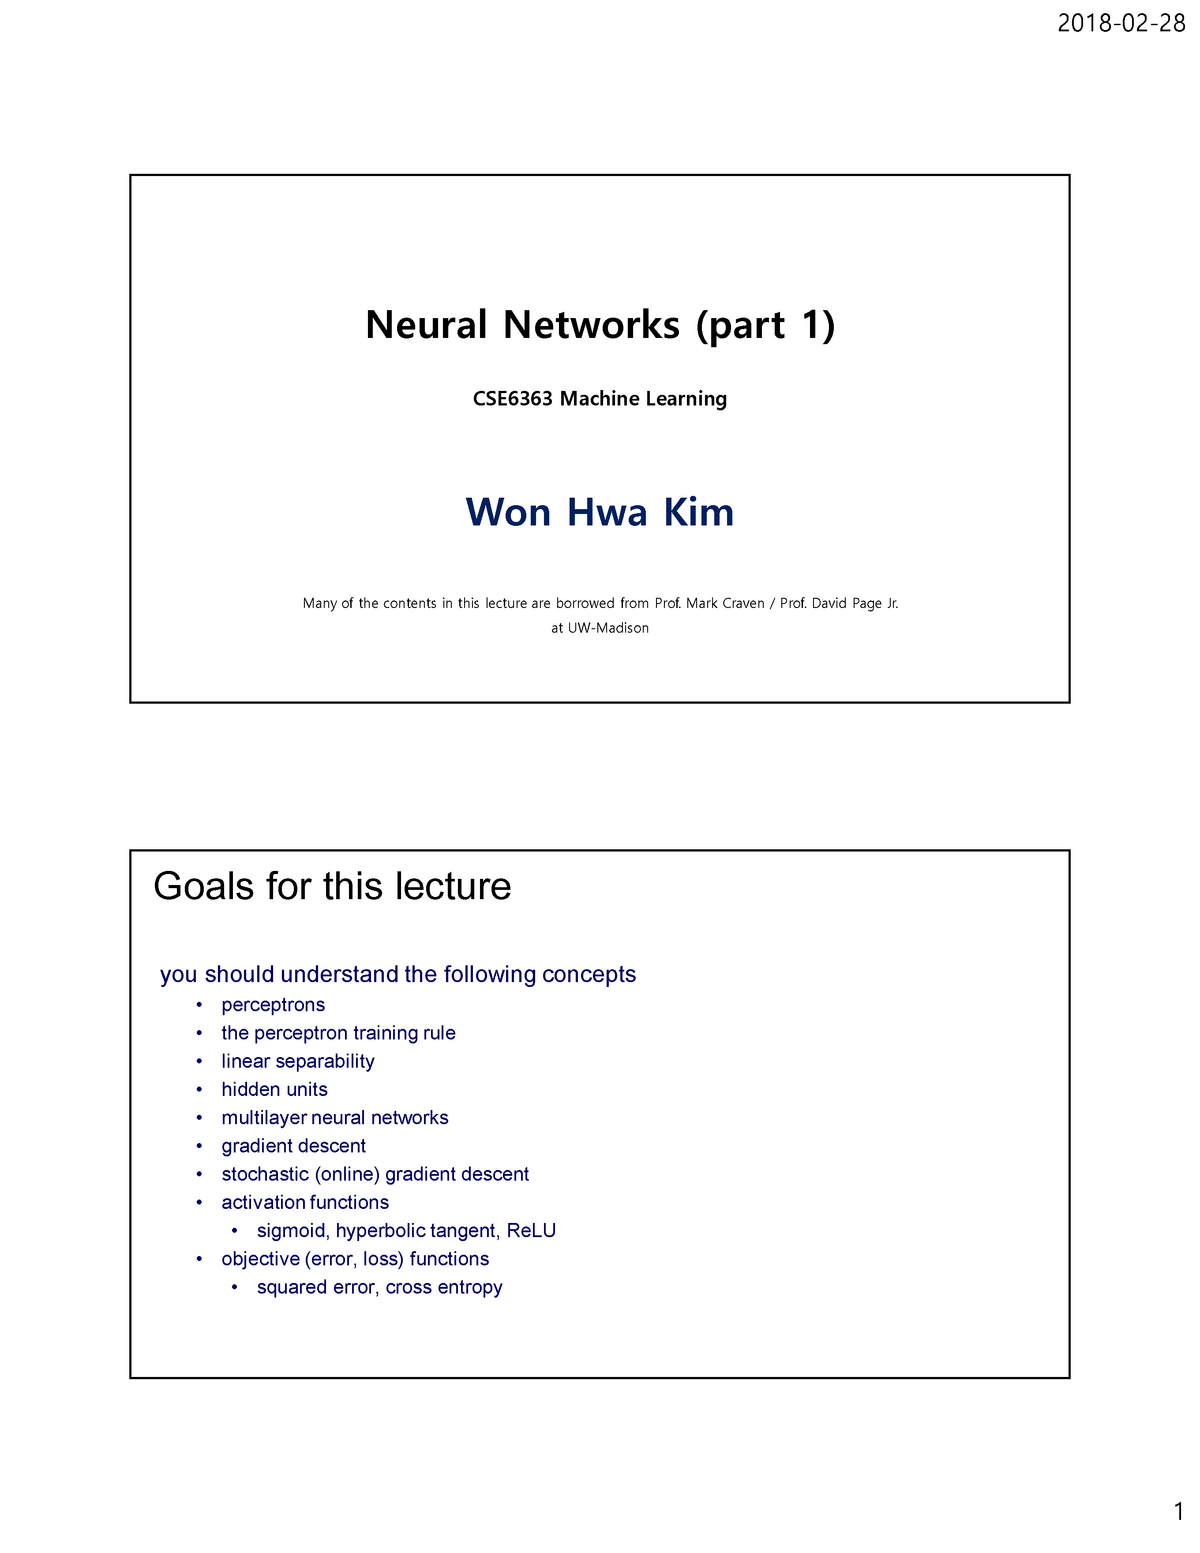 10 ann final - Lecture notes 10 - CSE 6364 MACHINE LEARNING